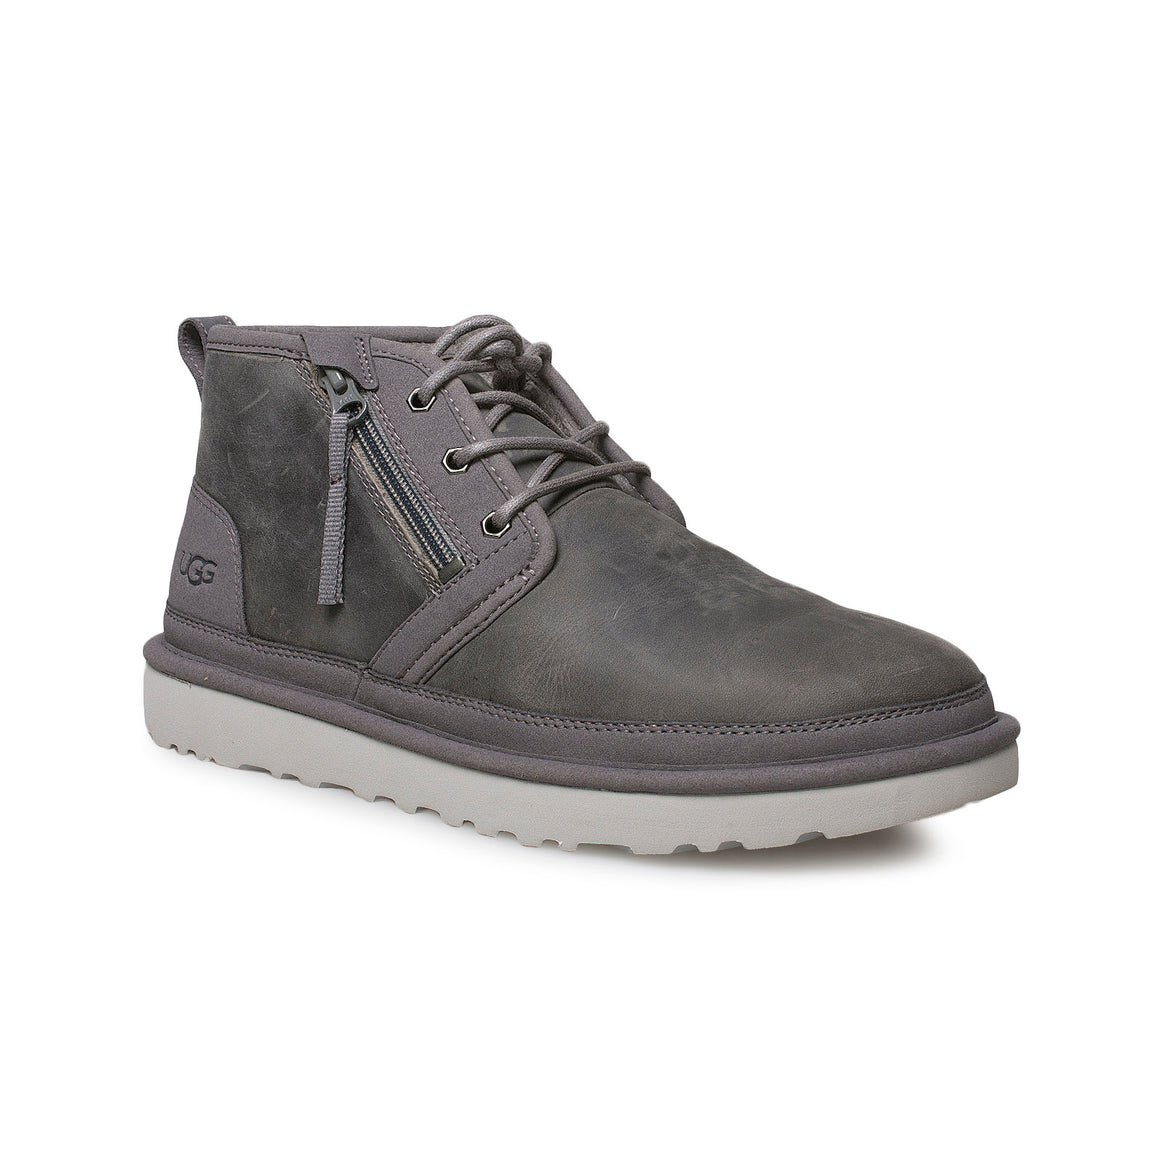 UGG Neumel Zip Dark Grey Boots - Men's